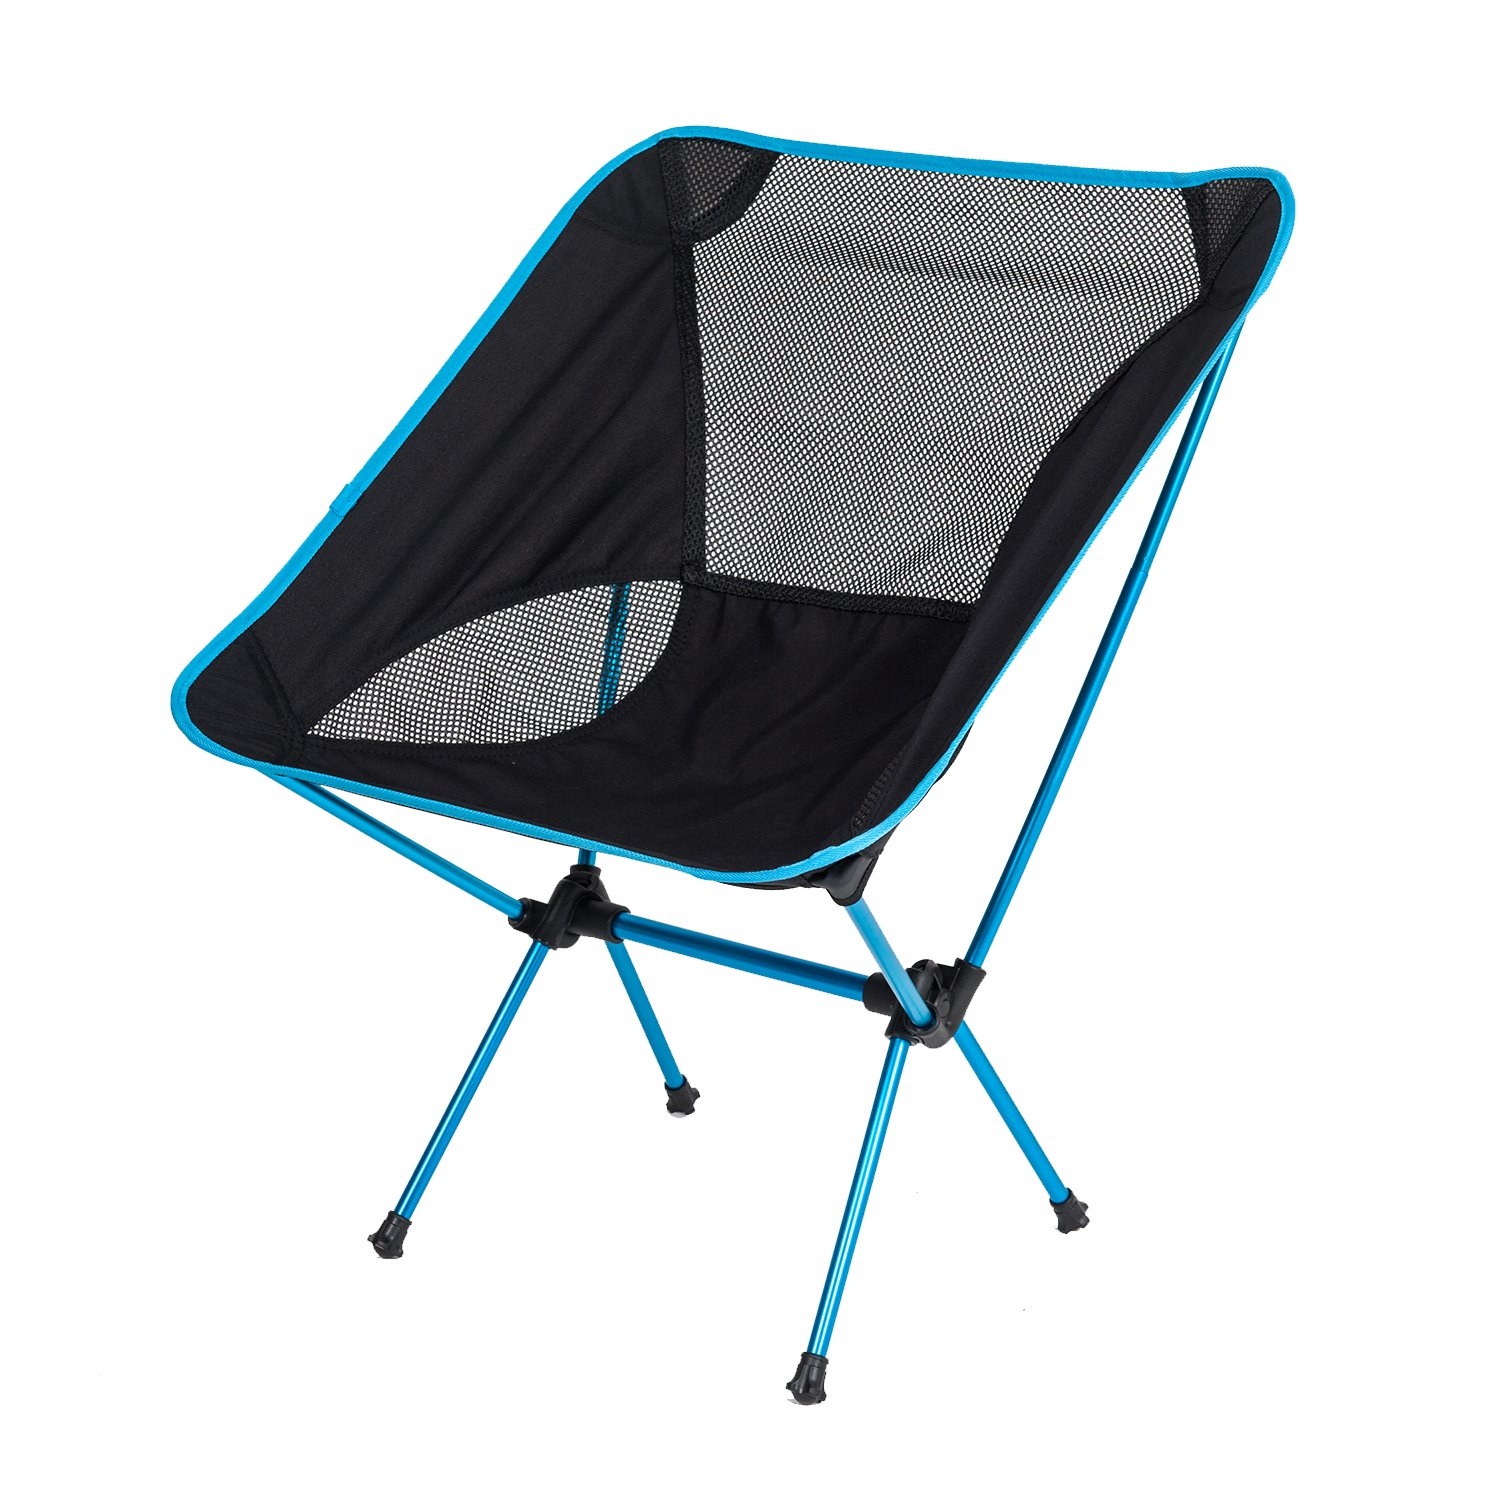 Lightweight camping chairs - Amazon Com Camp Solutions Ultralight Portable Folding Camping Backpacking Chairs With Carry Bag Sports Outdoors